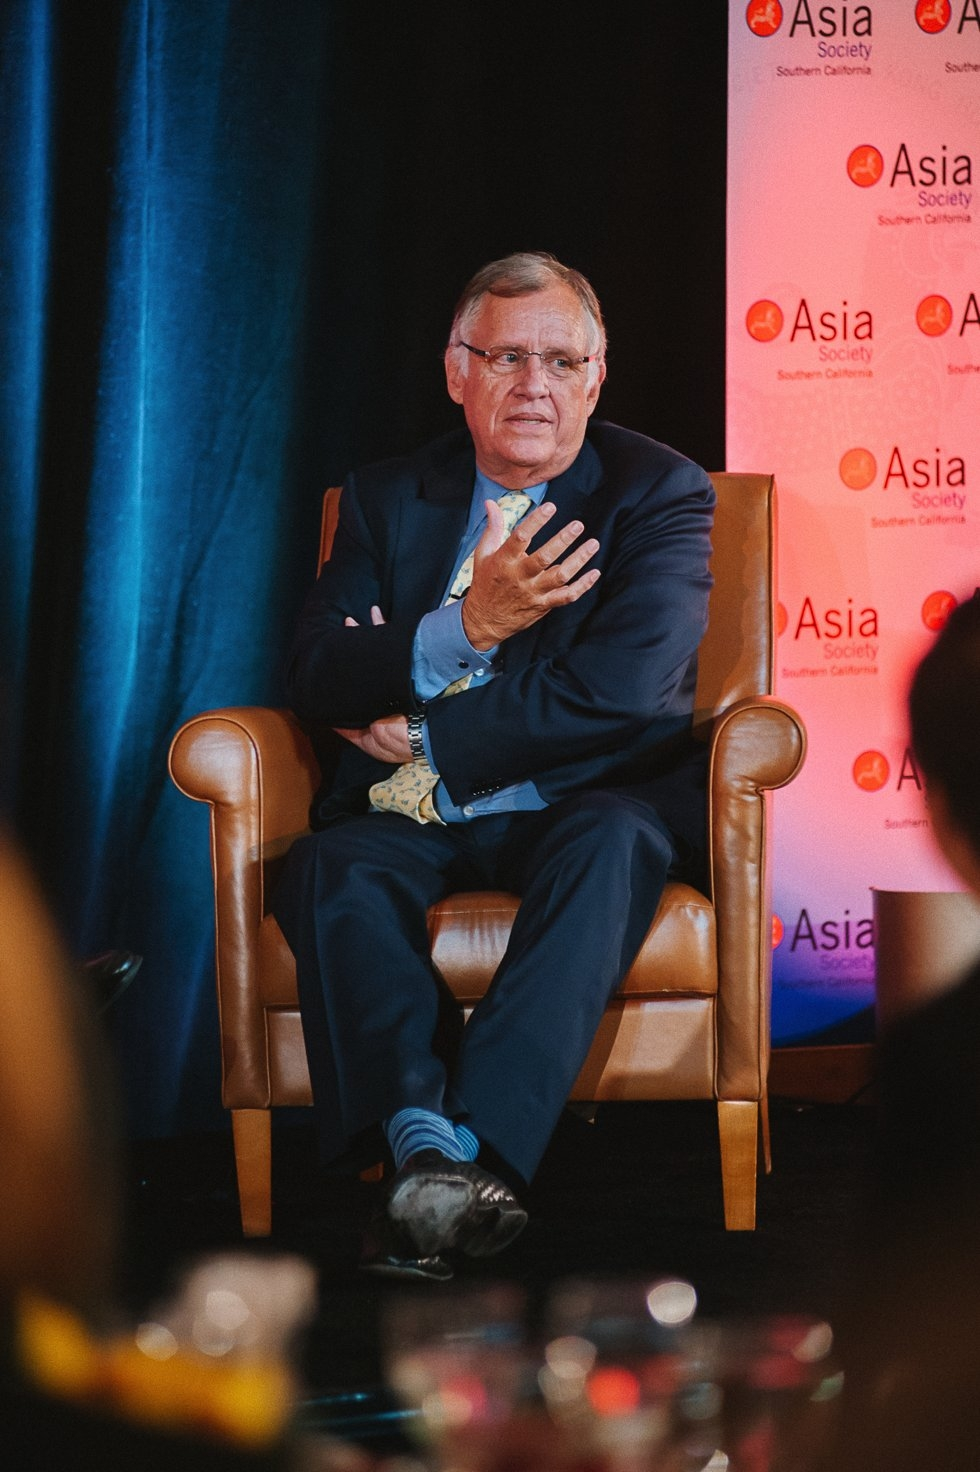 Lewis Coleman, President, Chief Financial Officer, DreamWorks. (Molly Ann/Asia Society)